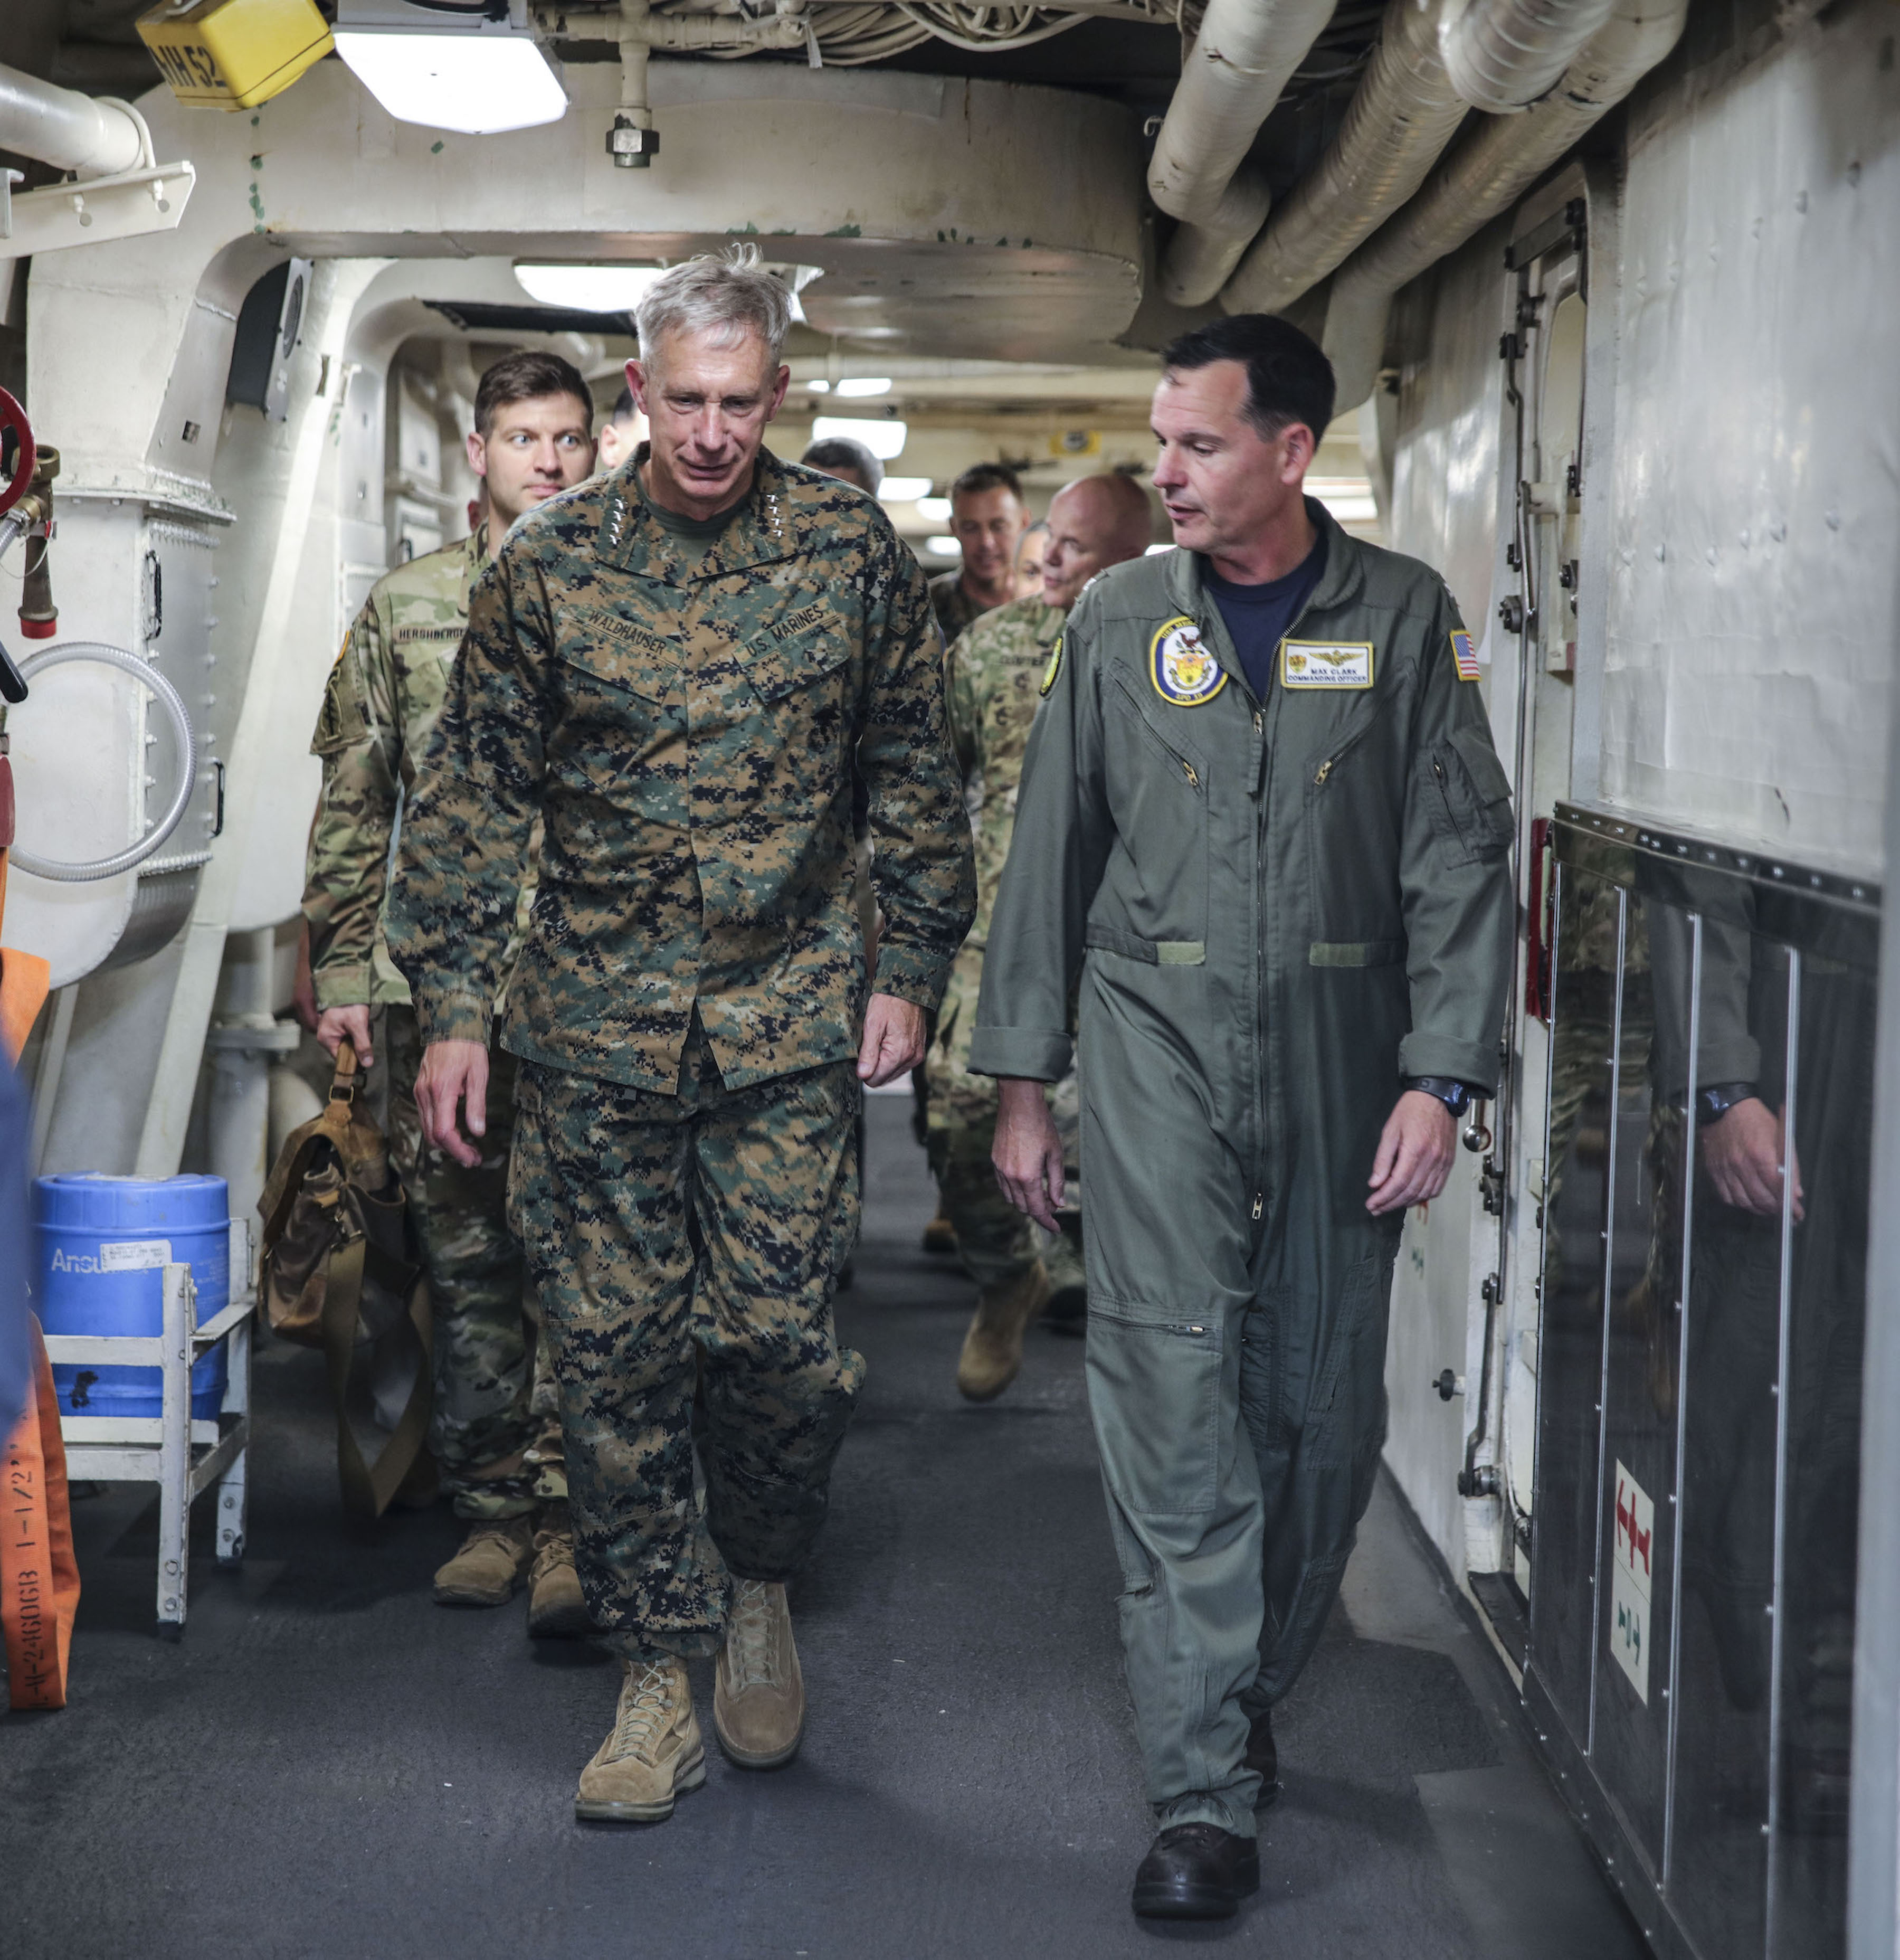 MEDITERRANEAN SEA (Sept. 6, 2017) U.S. Marine Gen. Thomas D. Waldhauser, commander, U.S. Africa Command, left, speaks with Capt. Max Clark, commanding officer of the San Antonio-class amphibious transport dock ship USS Mesa Verde (LPD 19), during a visit aboard the ship Sept. 6, 2017. The ship is deployed with the Bataan Amphibious Ready Group and 24th Marine Expeditionary Unit to support maritime security operations and theater security cooperation efforts in the U.S. 6th Fleet area of operations. (U.S. Navy photo by Mass Communication Specialist 2nd Class Brent Pyfrom/Released)